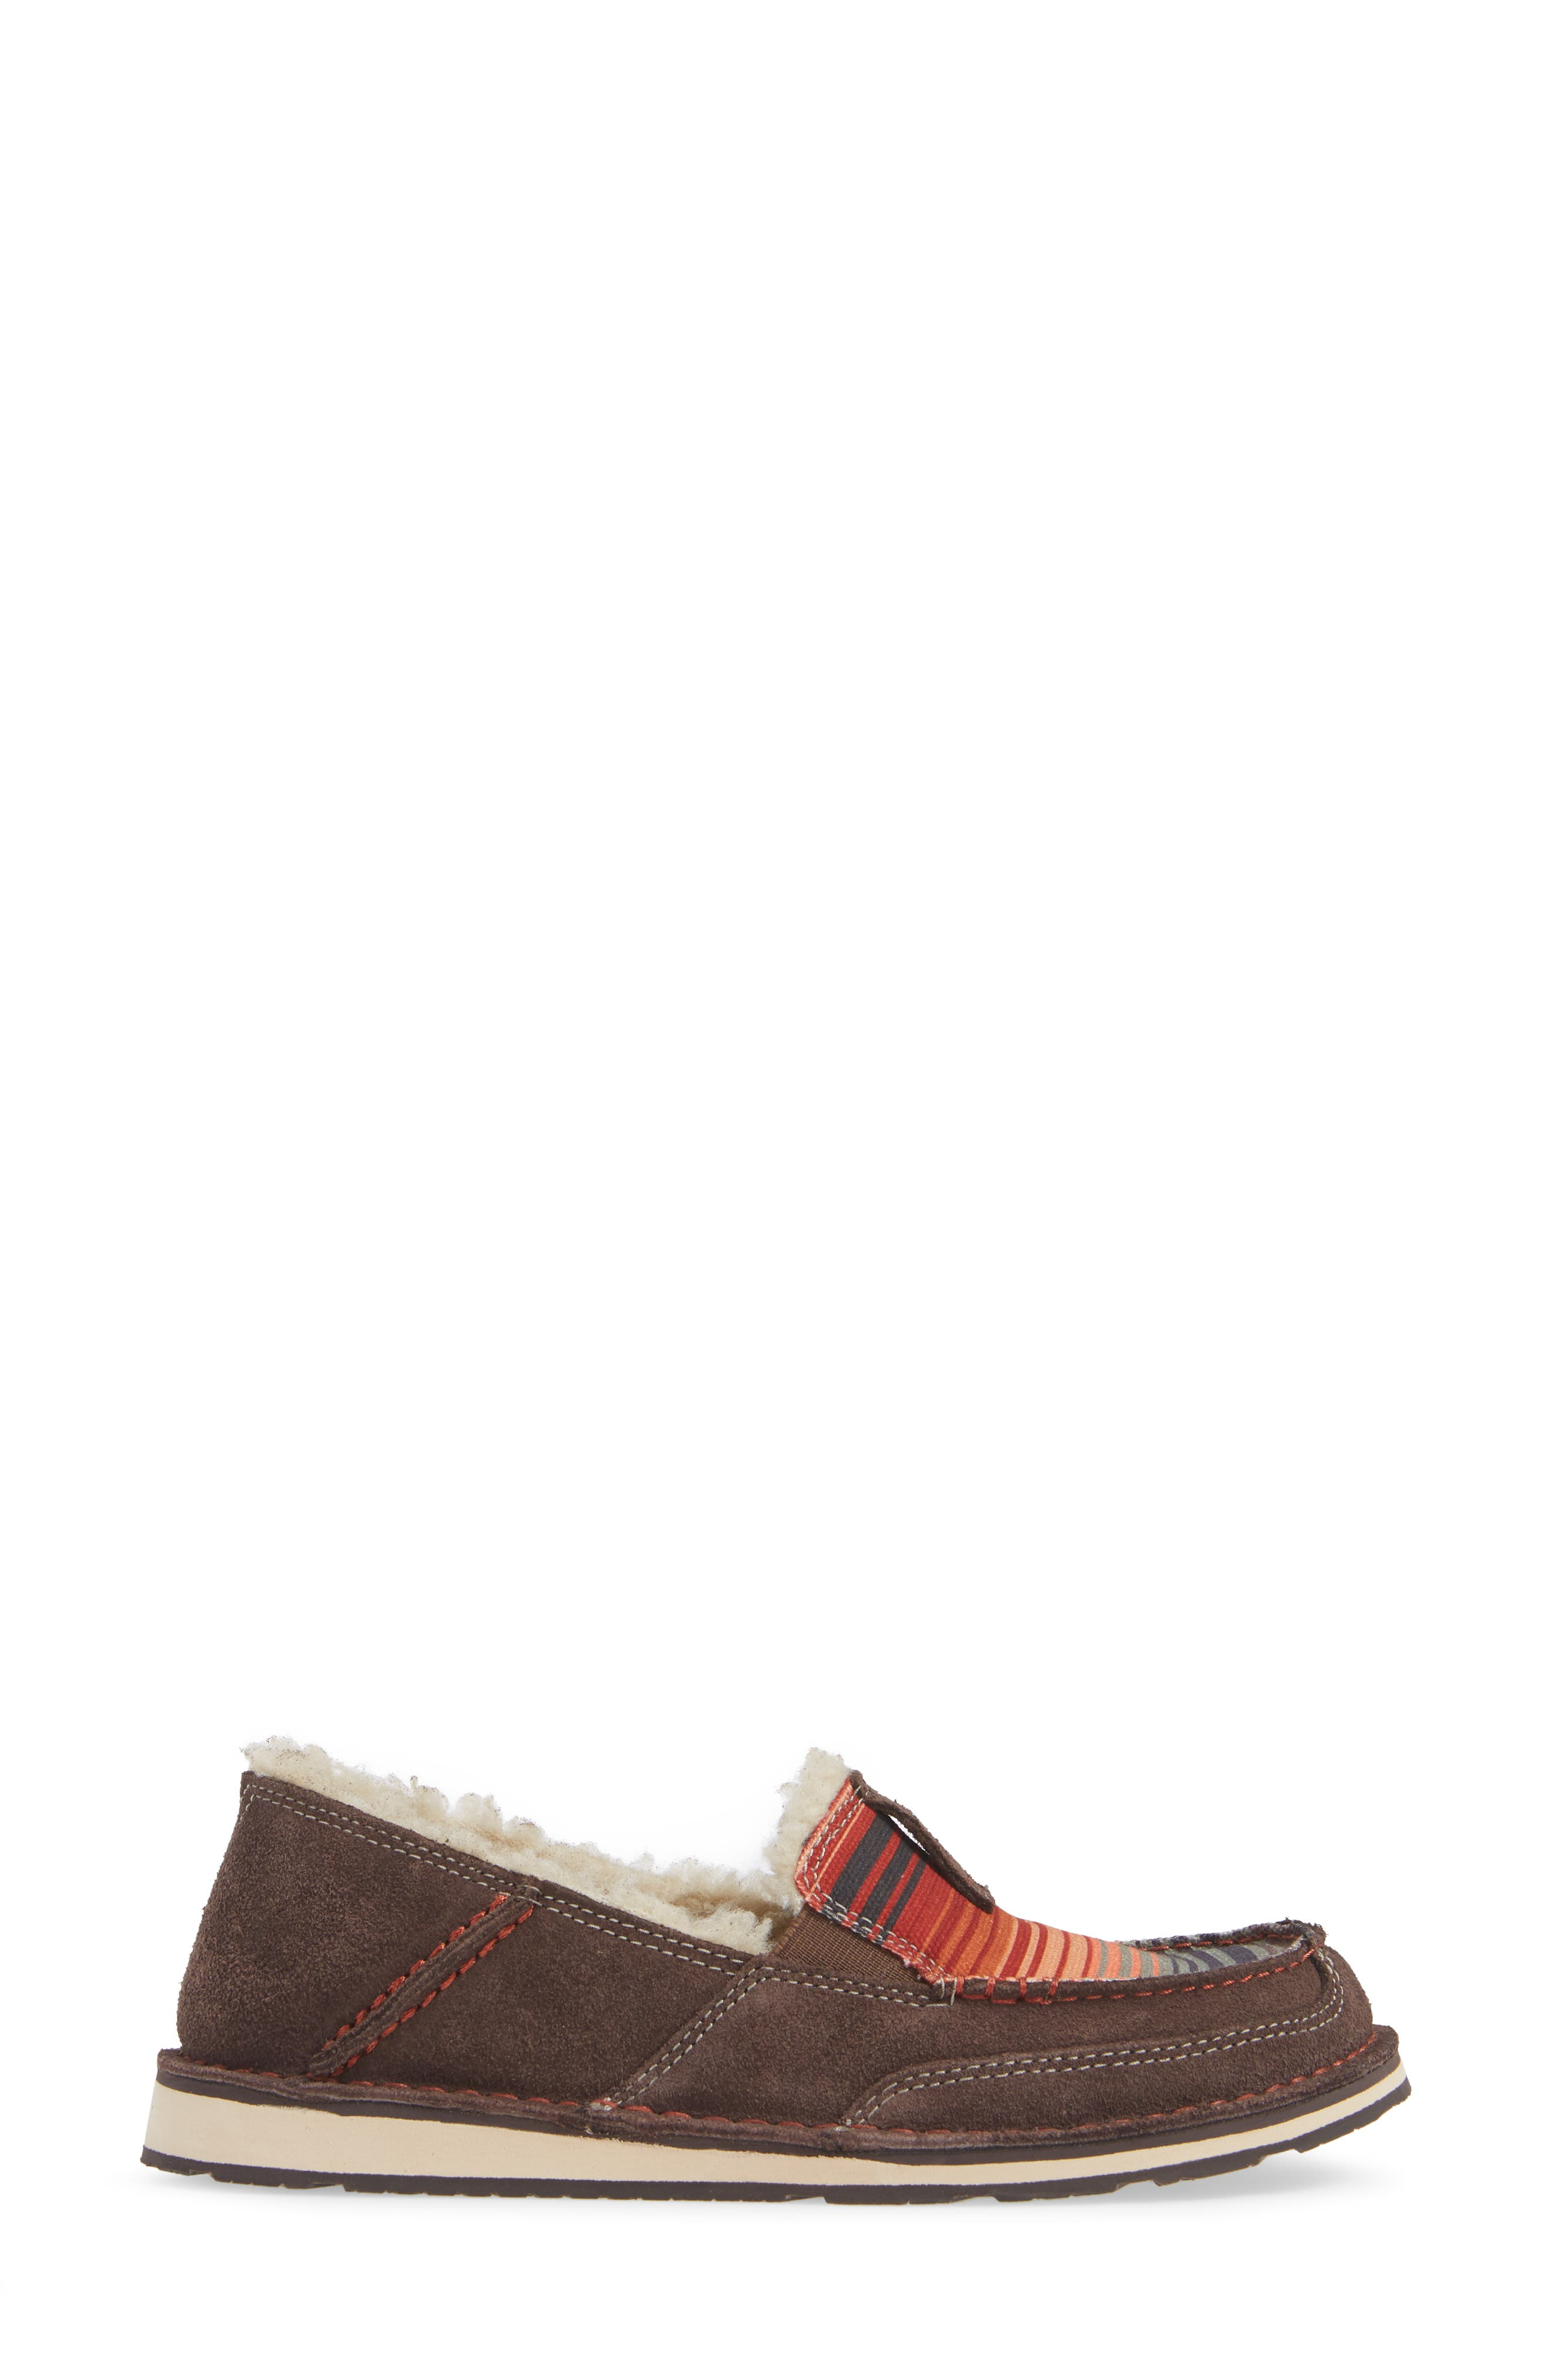 ARIAT,                             Cruiser Slip-On Loafer,                             Alternate thumbnail 3, color,                             SOUTHWESTERN FABRIC